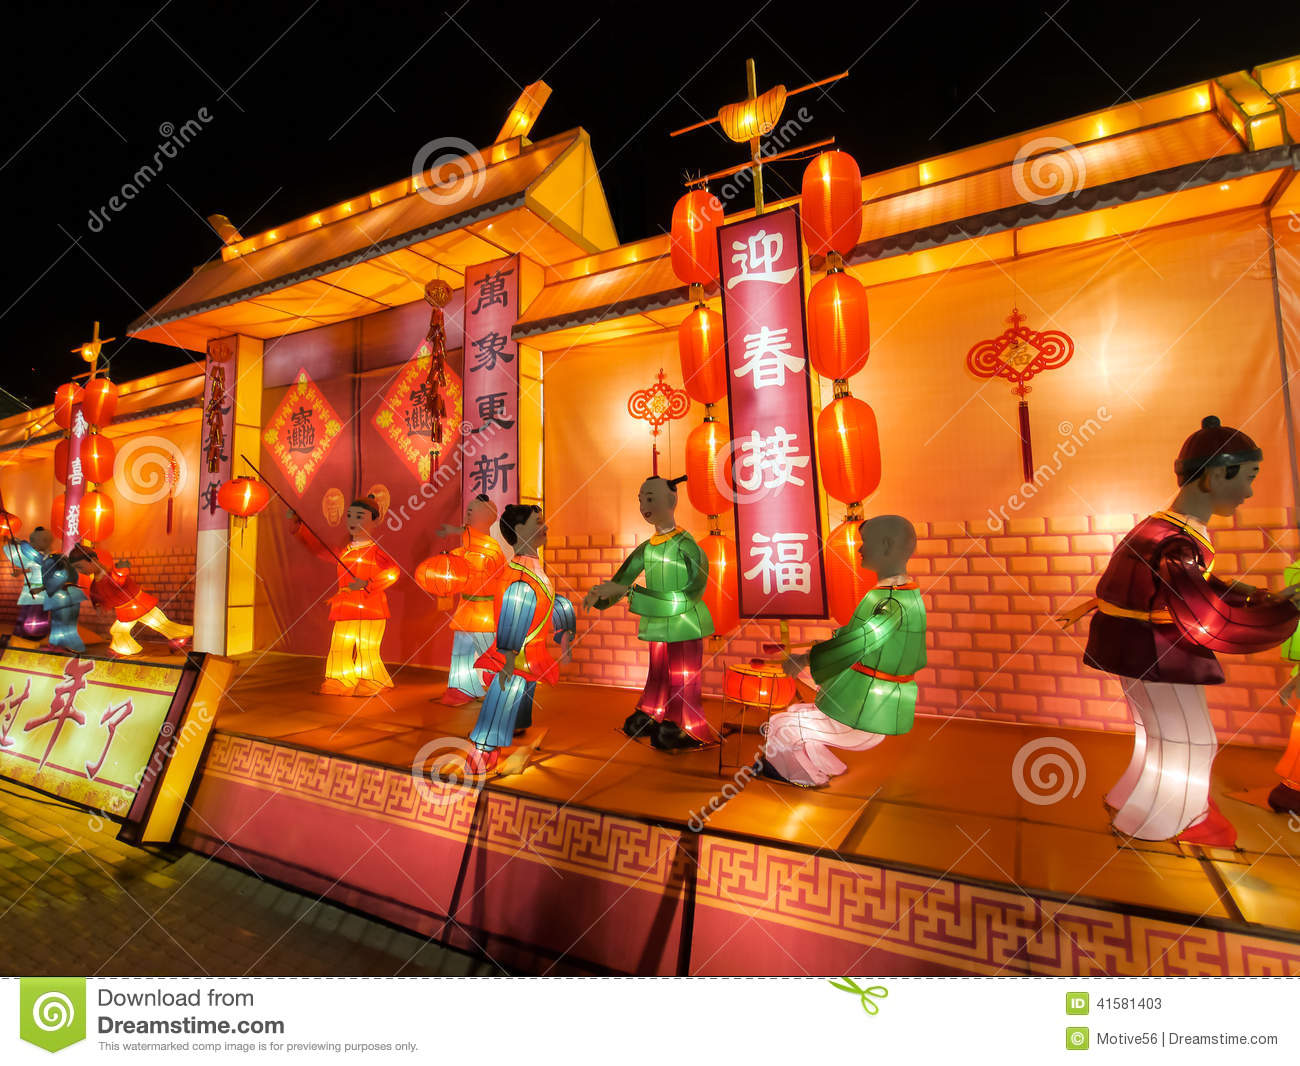 Chinese New Year Stock Photos Royalty Free Images